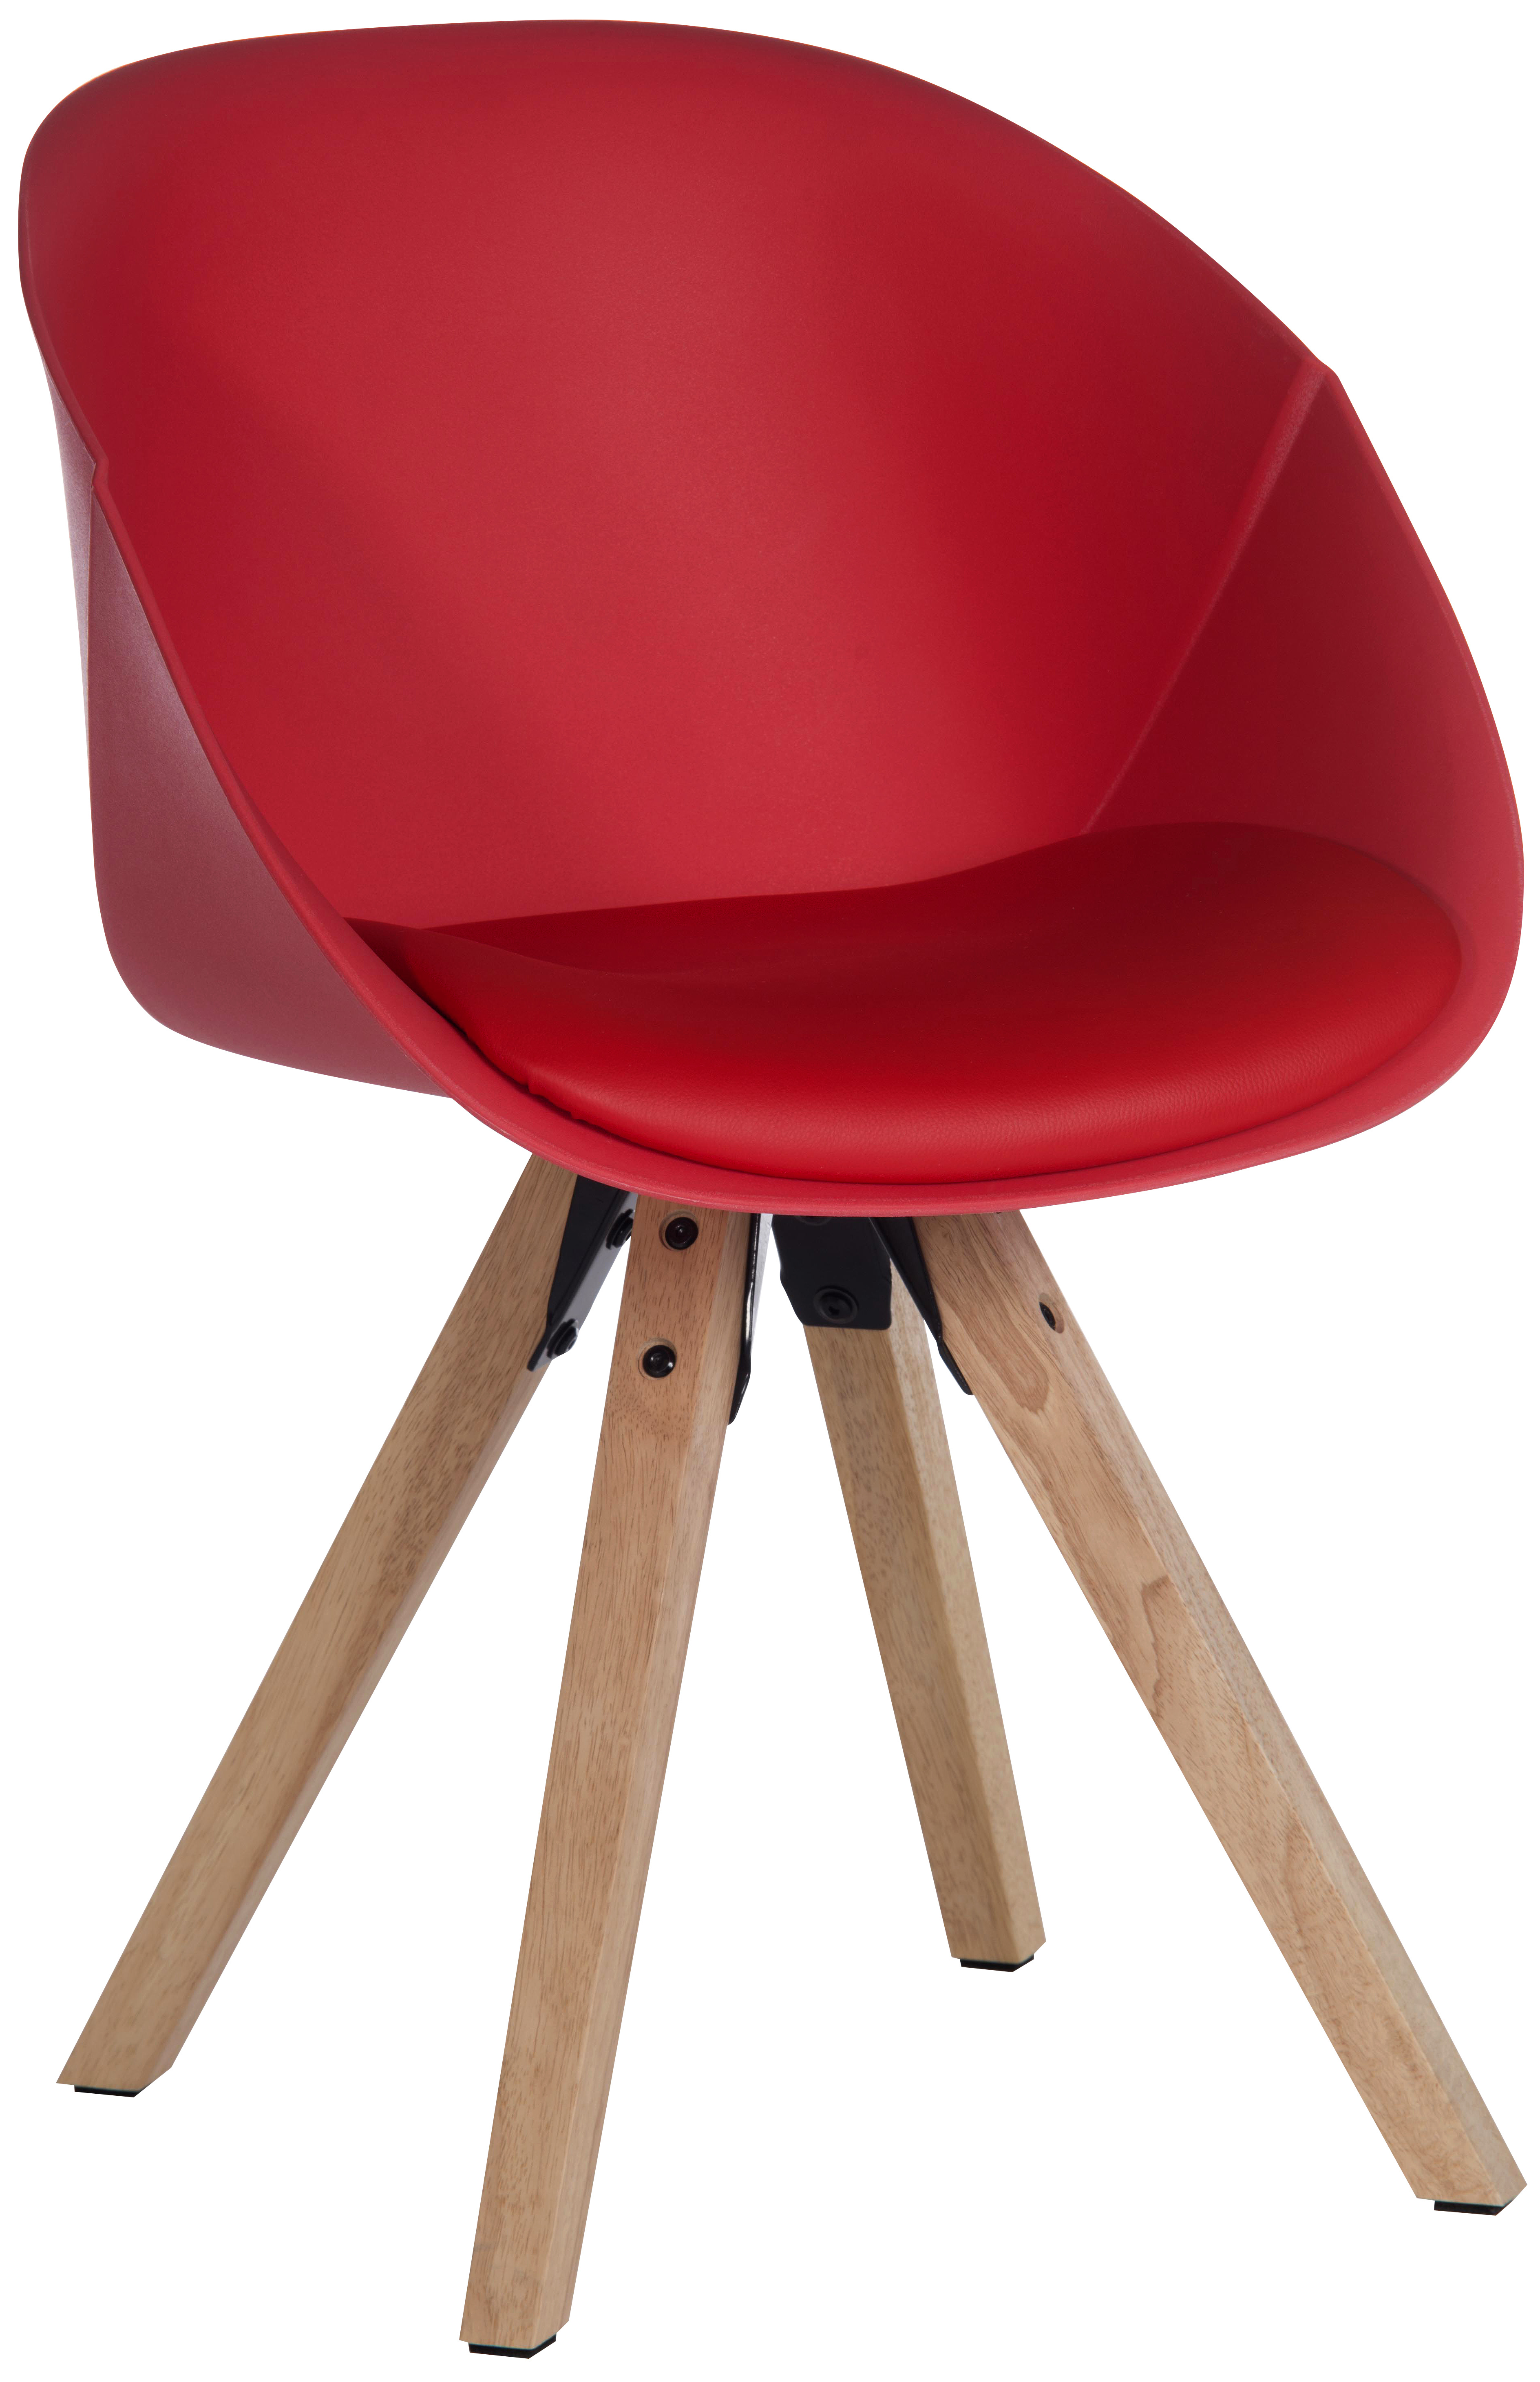 Teknik Office Red Pyramid Padded Tub Chair Soft Polyurethane and PU Fabric with Wooden Oak Legs Available in Black Red or White Packs of 2